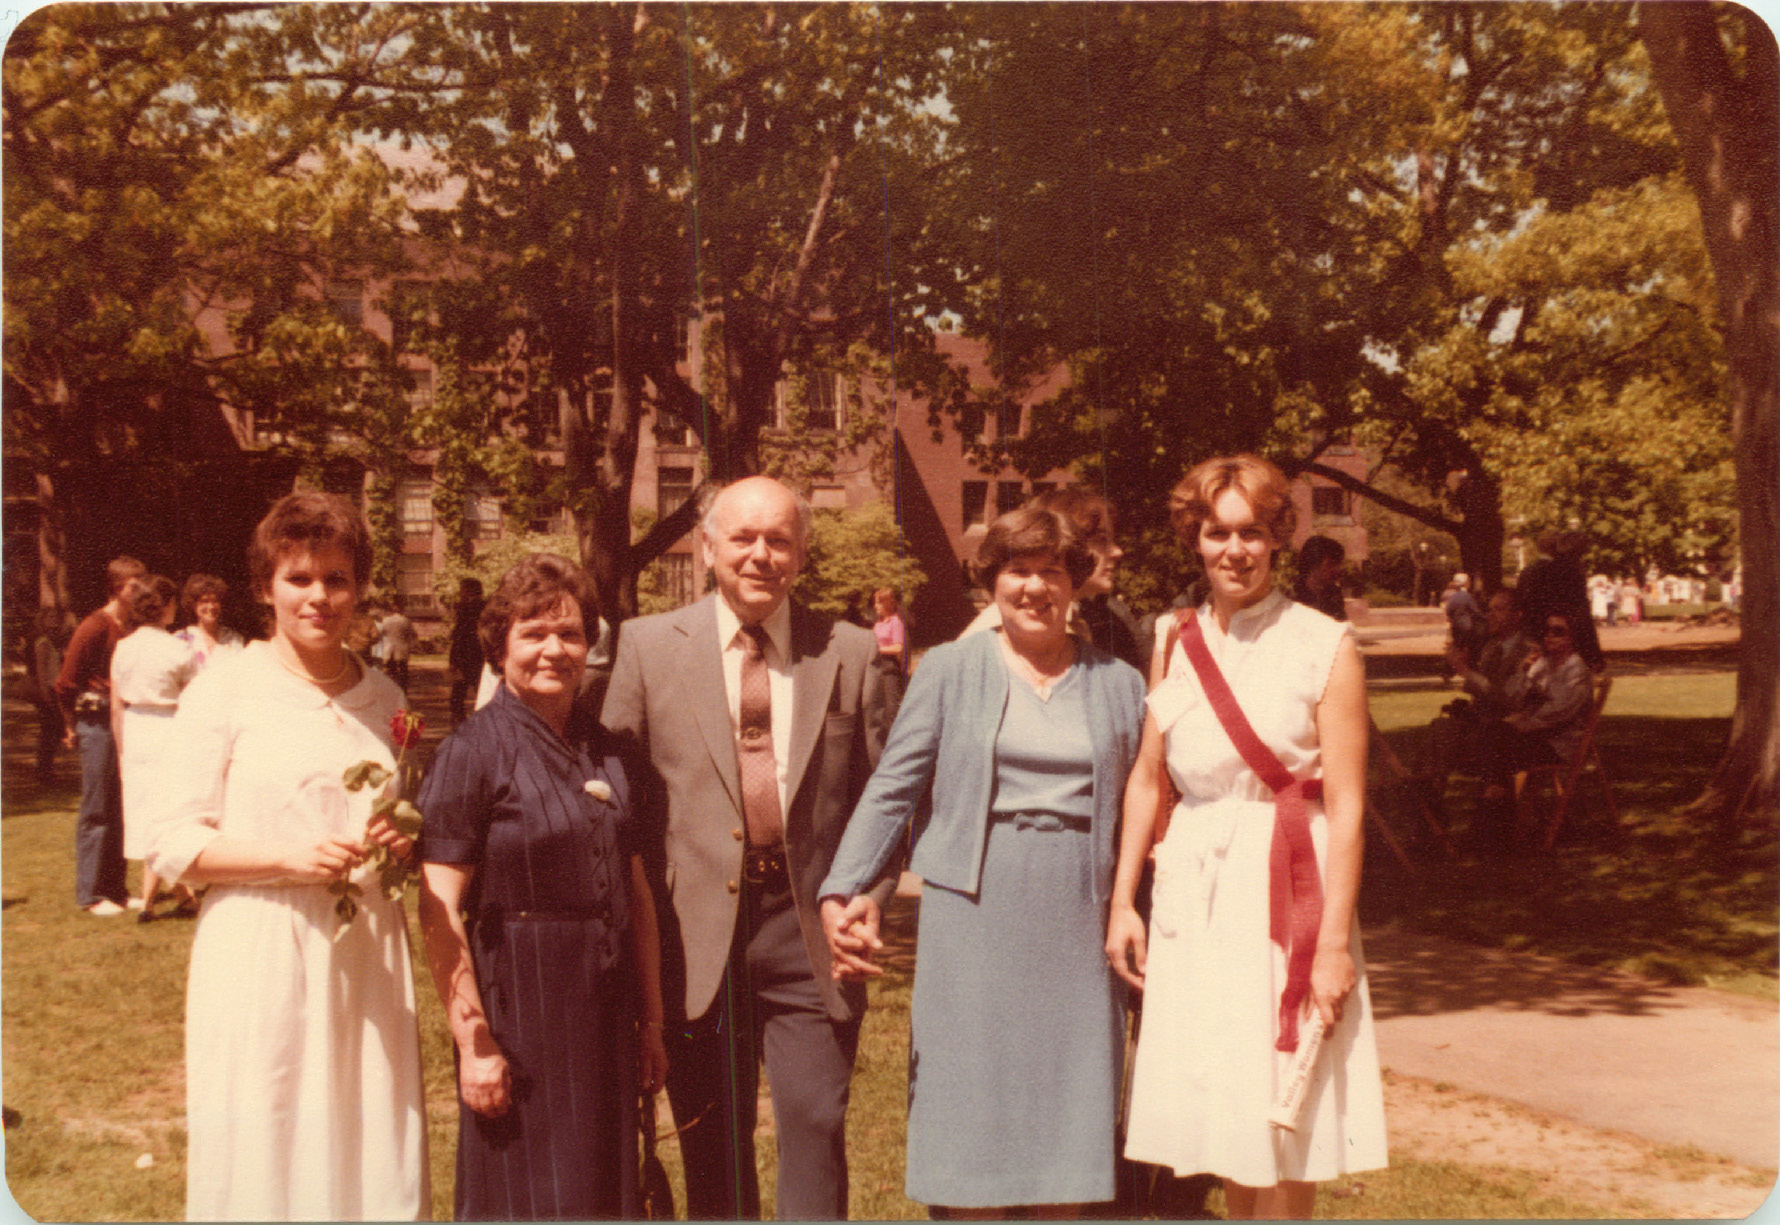 Celeste, Aunt Mayme (Eleanor's sister), Al, Eleanor, & Lorraine at her 10th anniversary , graduation from Smith College